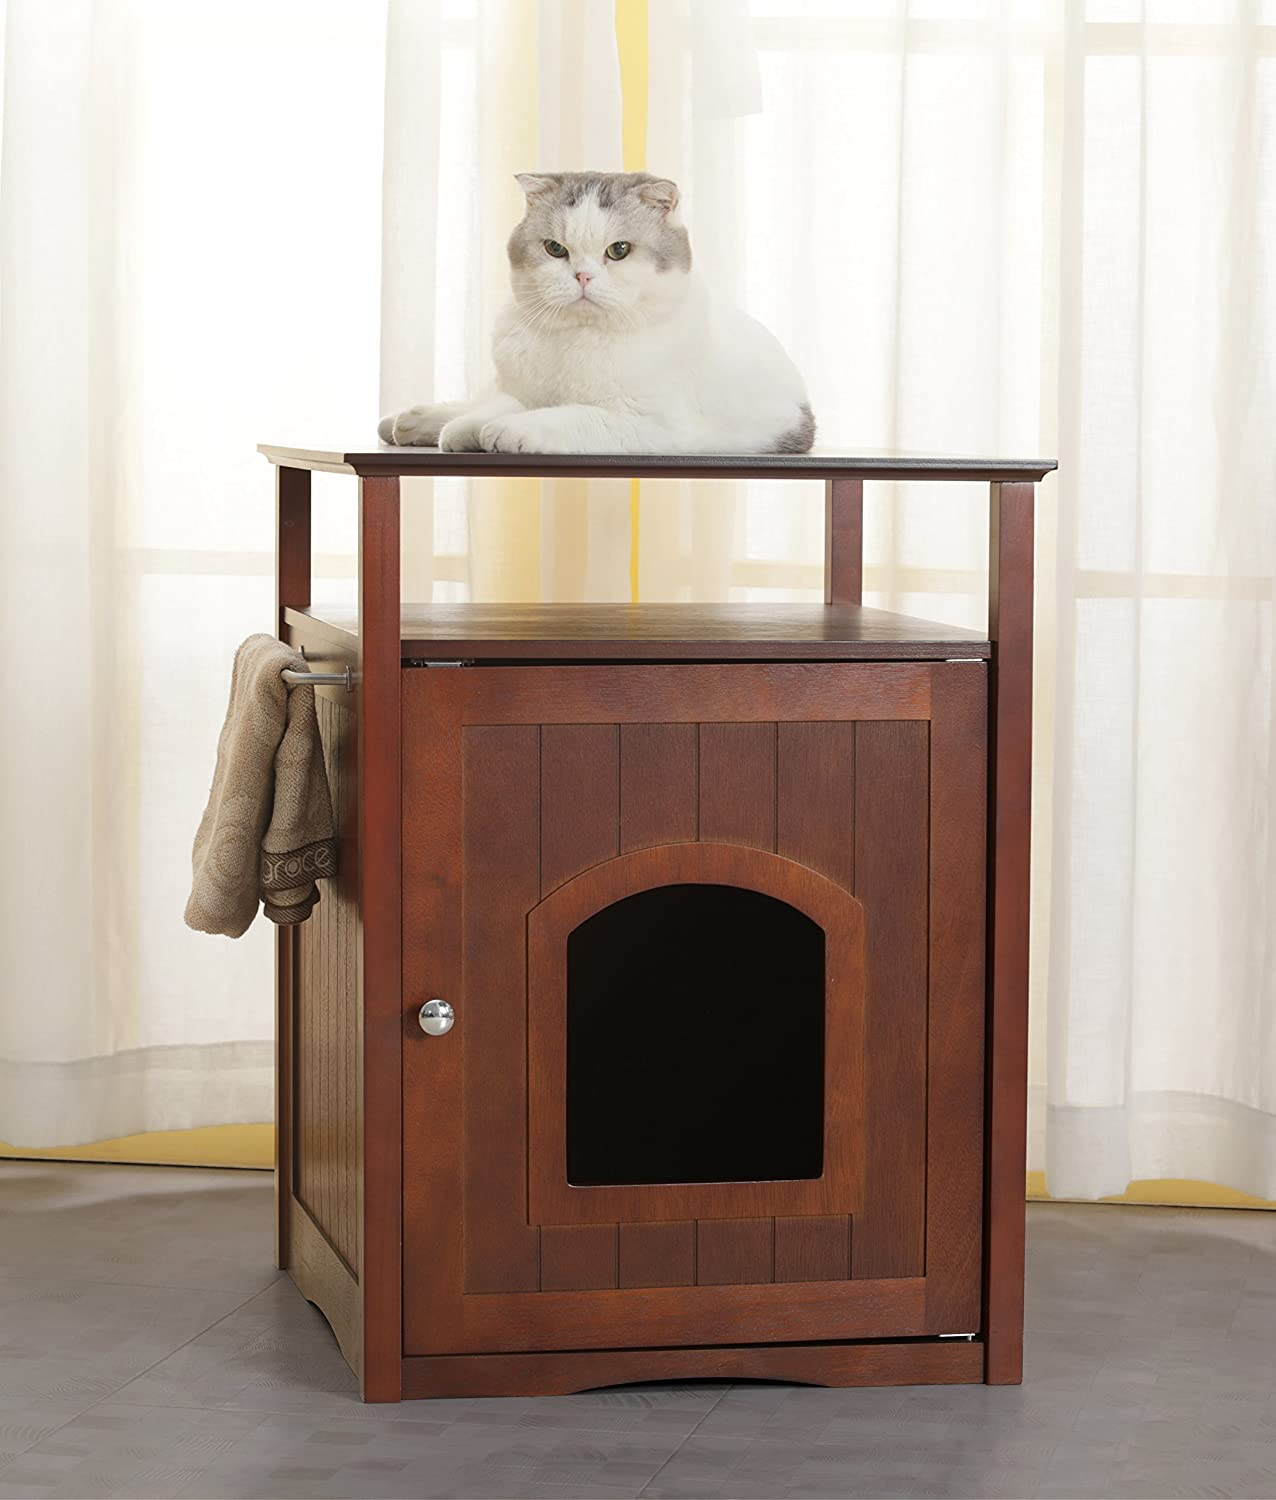 Trixie Pet Products Wooden Cat Home or Litter Box Concealer in Walnut